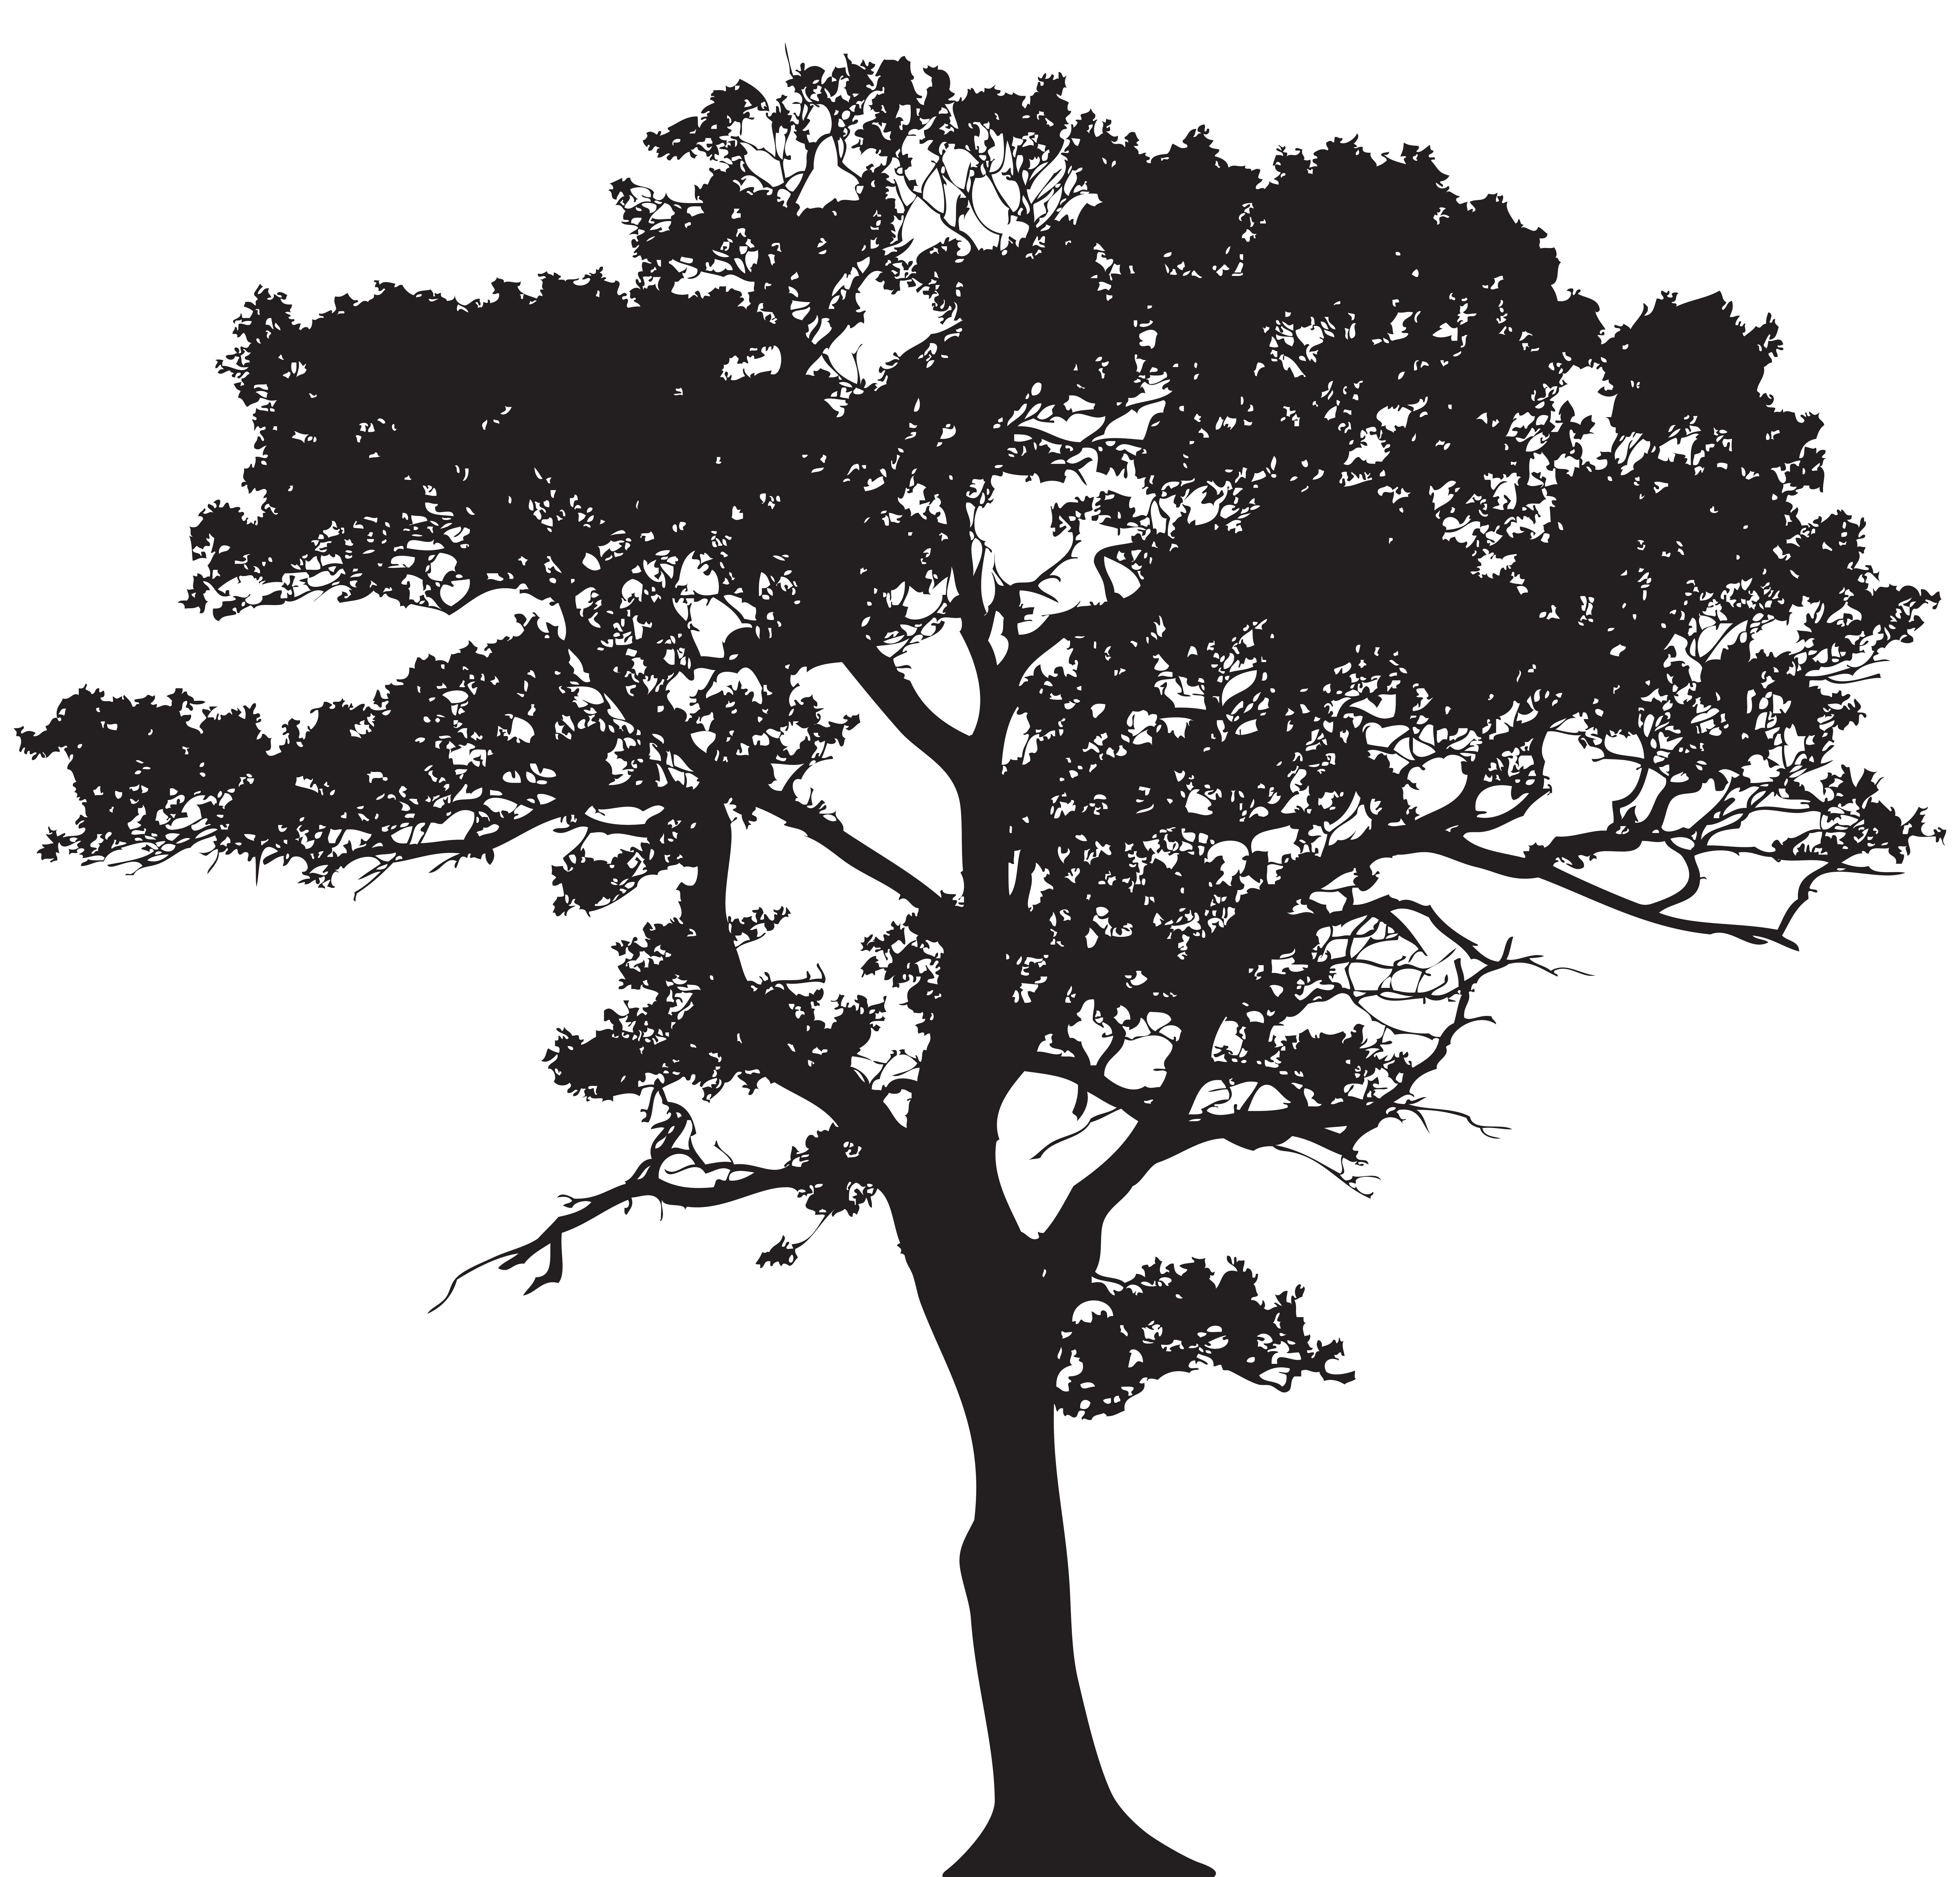 Silhouette Tree PNG Clip Art Image.